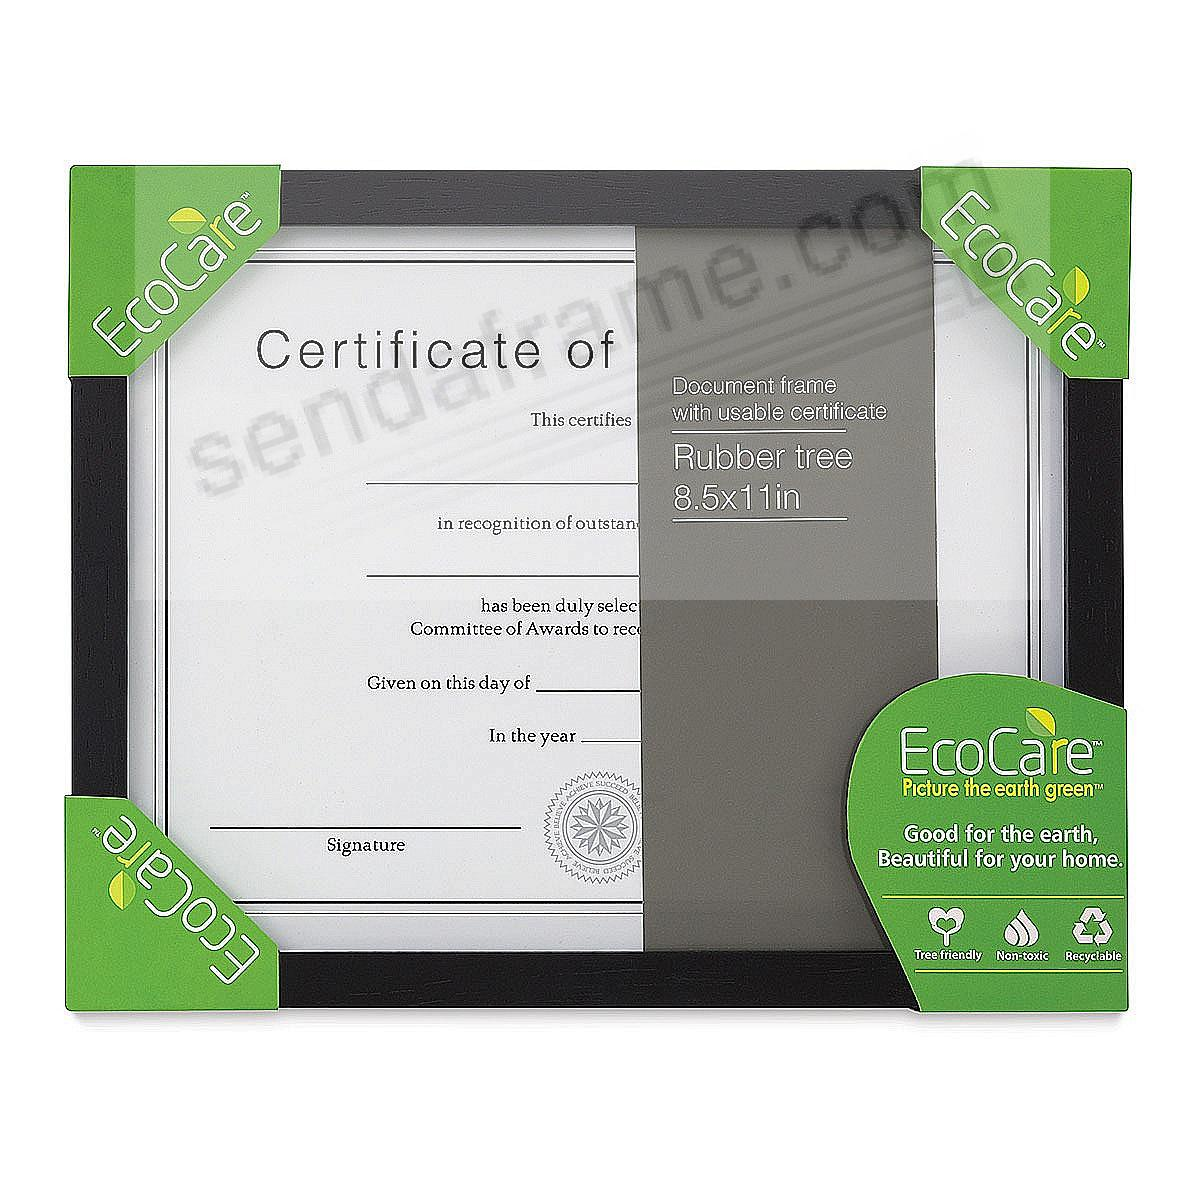 Rubberwood EcoCare CONTEMPORARY Black 11x8½ frame by Nielsen®